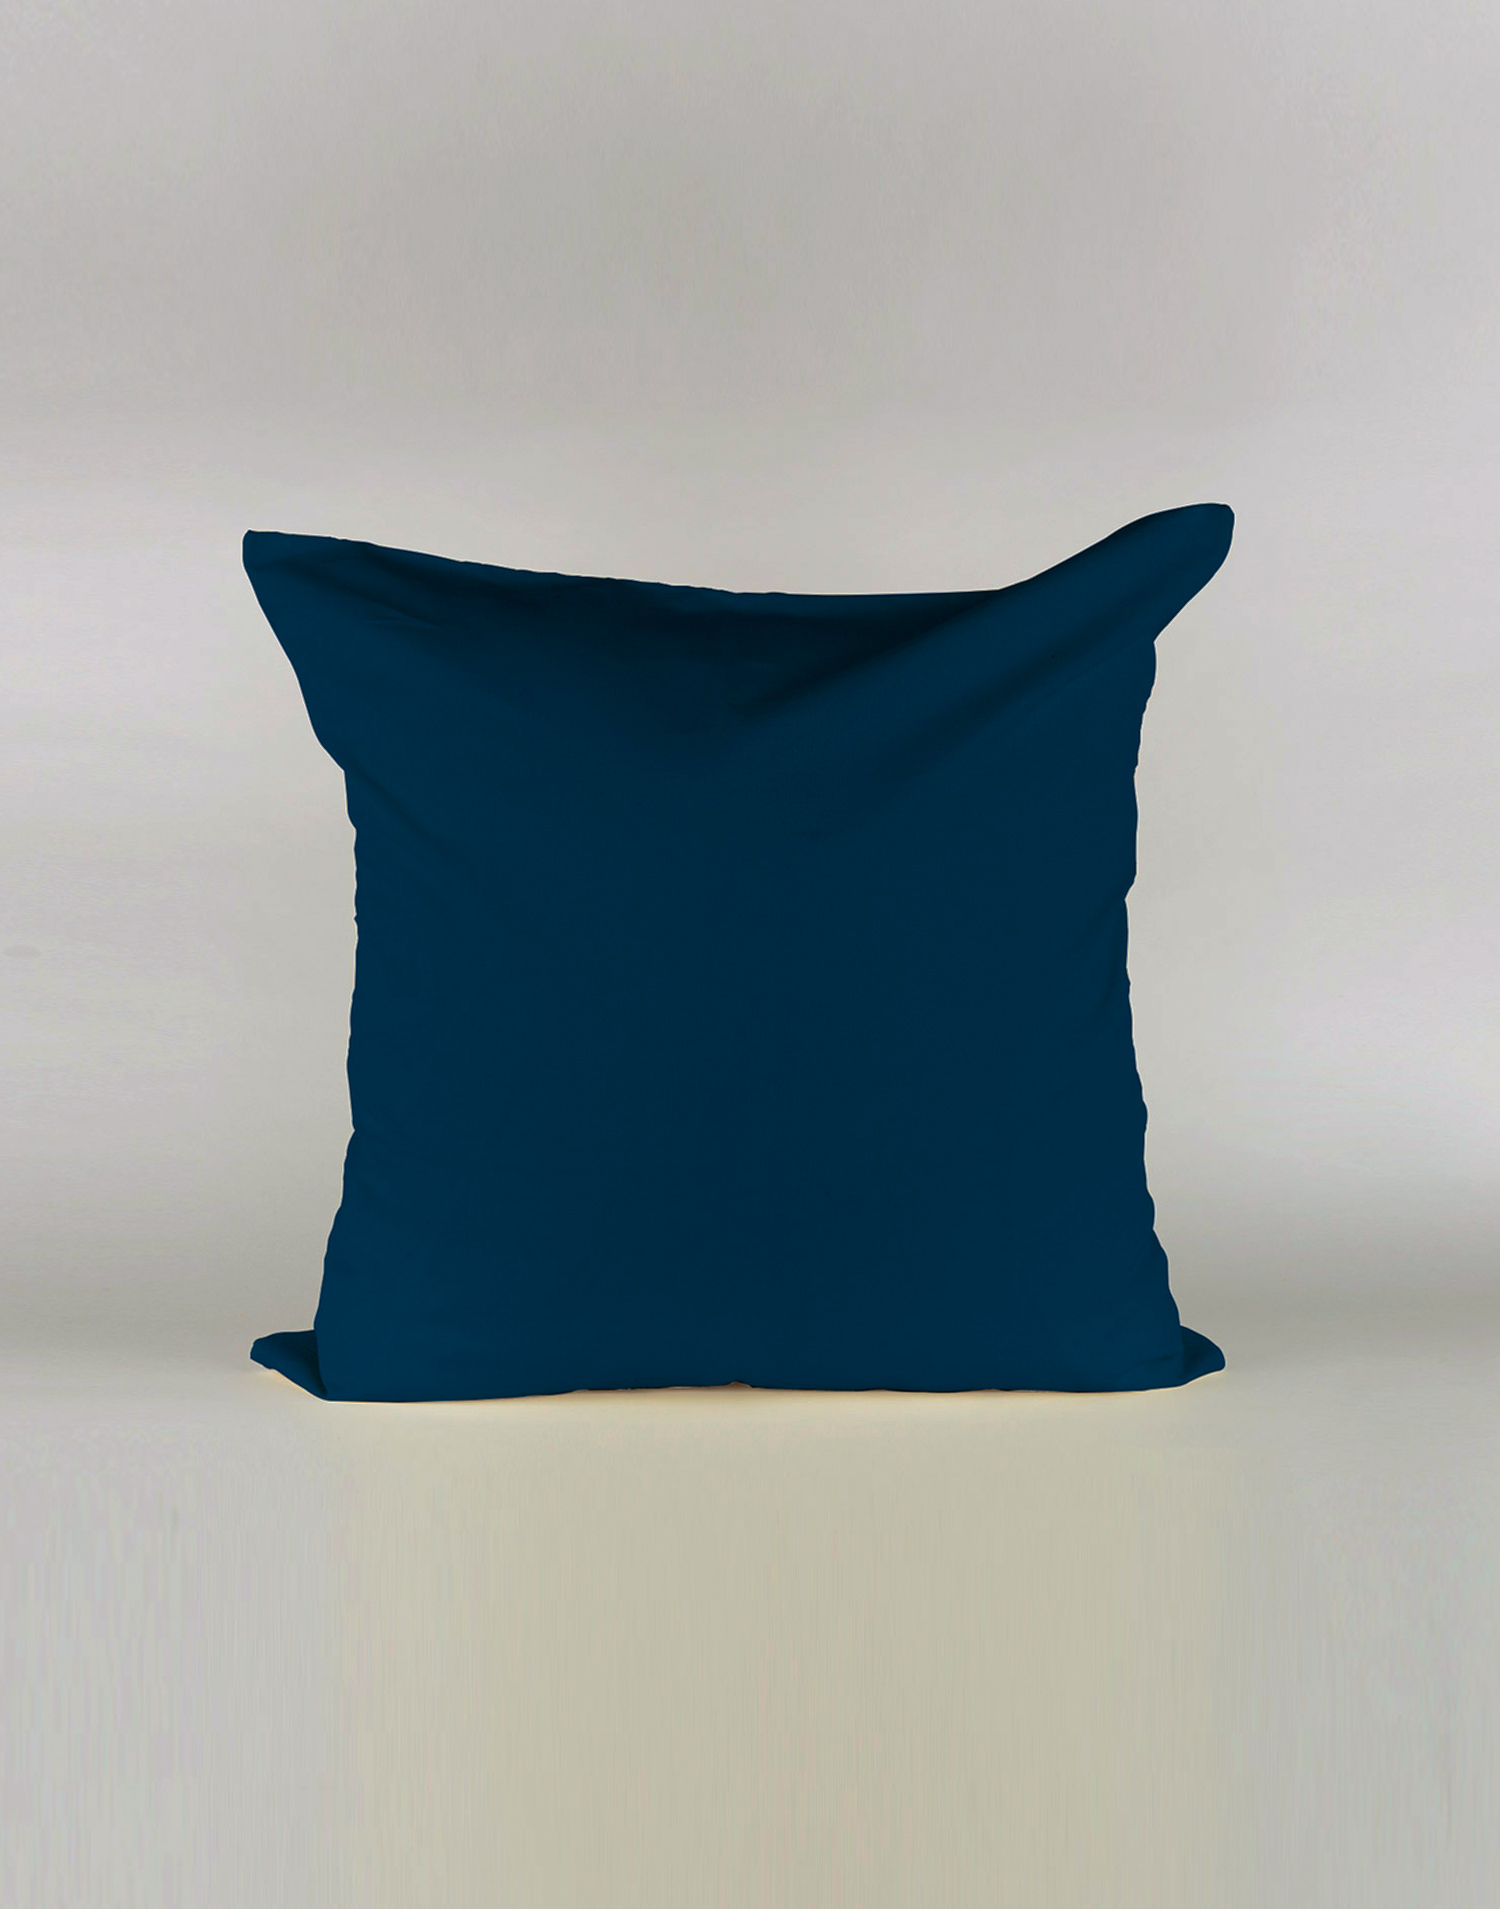 Panama cushion cover 45 x 45 cm